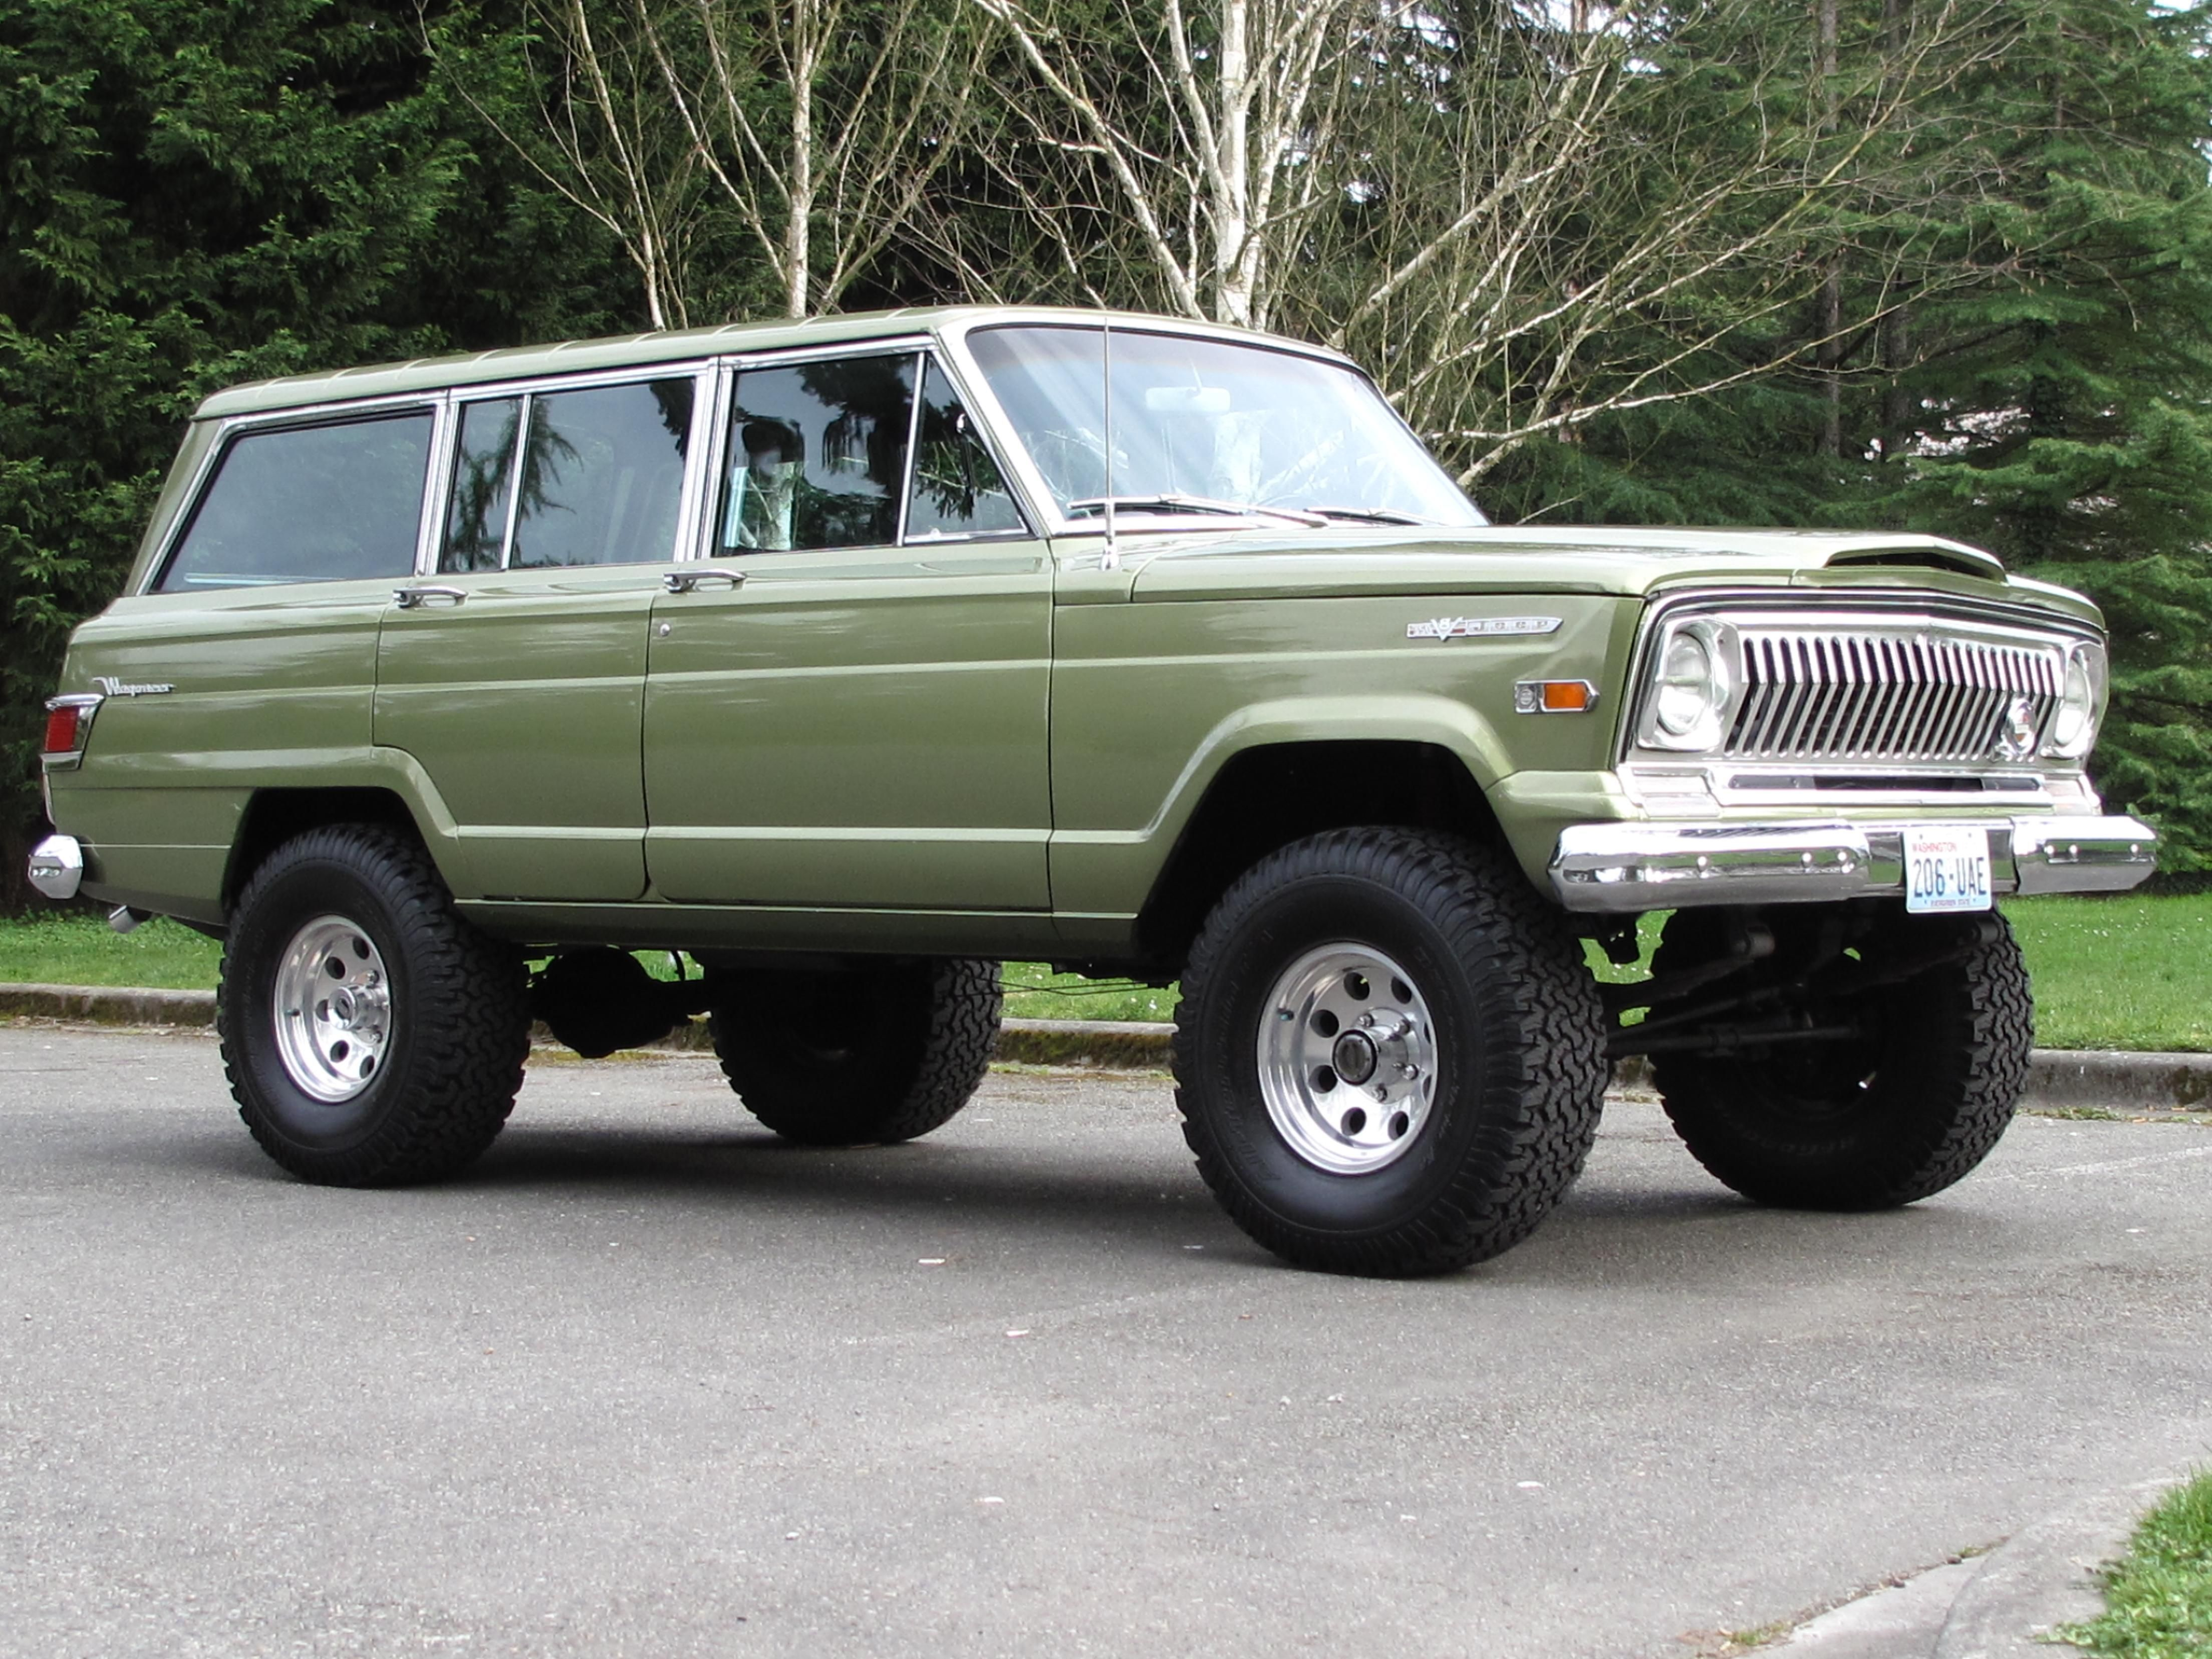 hight resolution of check out customized 70jeep s 1970 jeep wagoneer photos parts specs modification for sale information and follow 70jeep in seattle wa for any latest